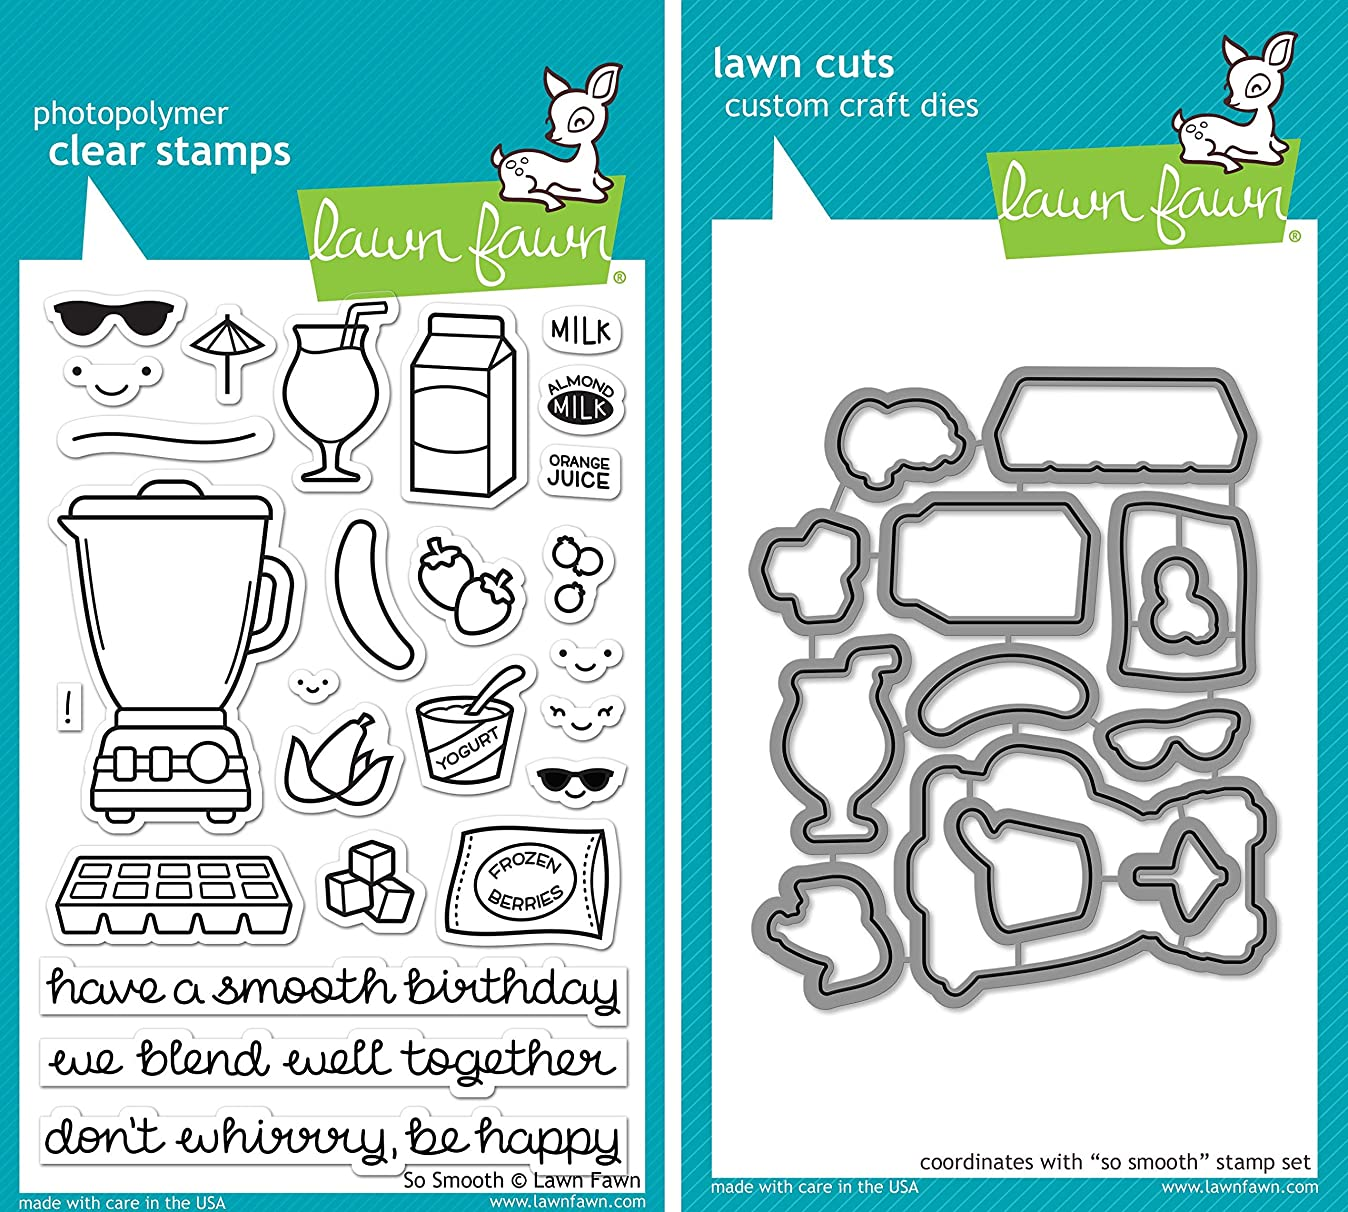 Lawn Fawn So Smooth Stamp and Die Set - Two item Bundle v0351154236